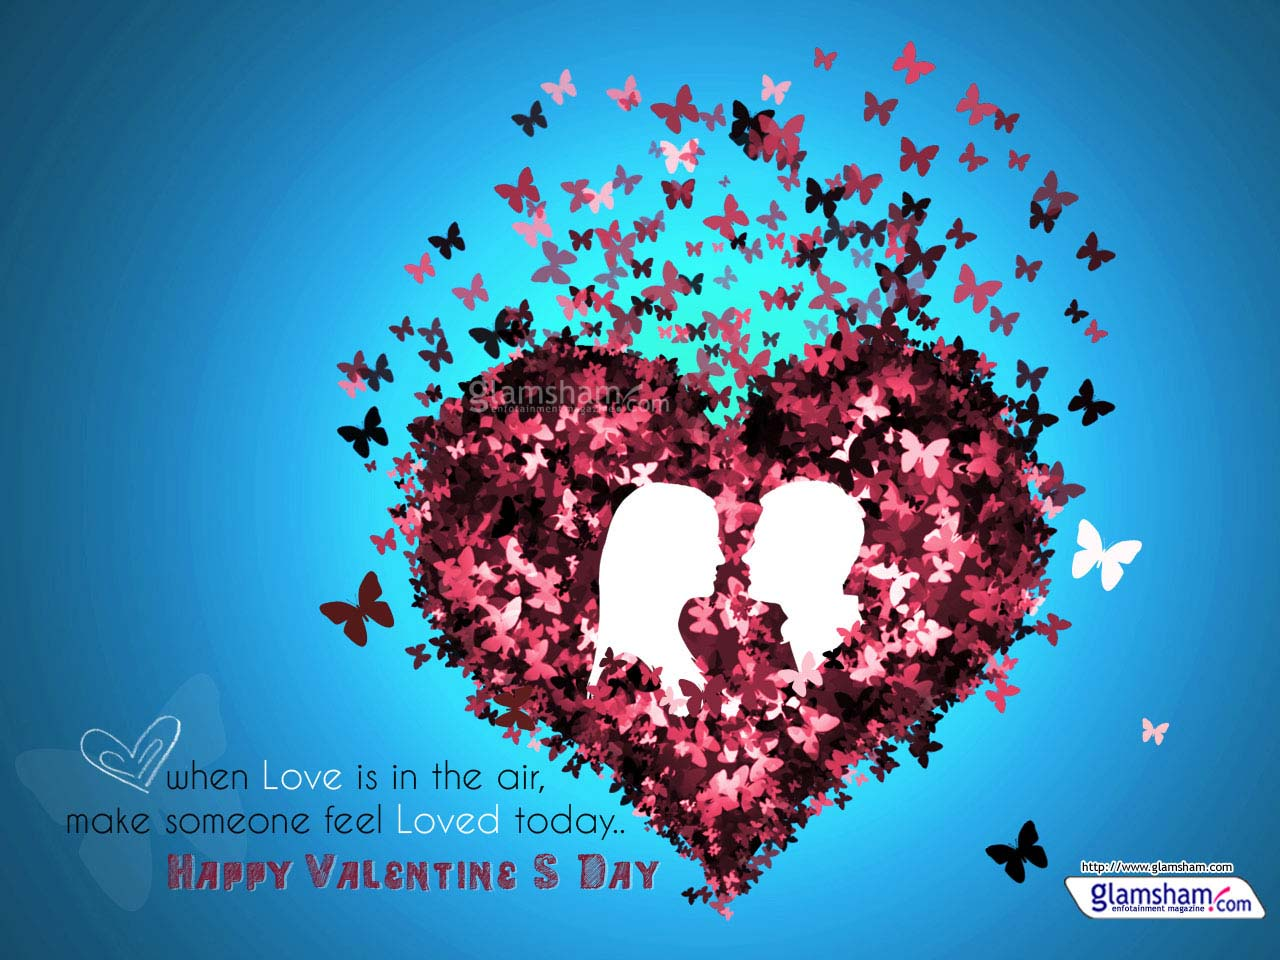 Beautiful and romantic valentines day hd wallpapers valentines day wallpapers altavistaventures Images